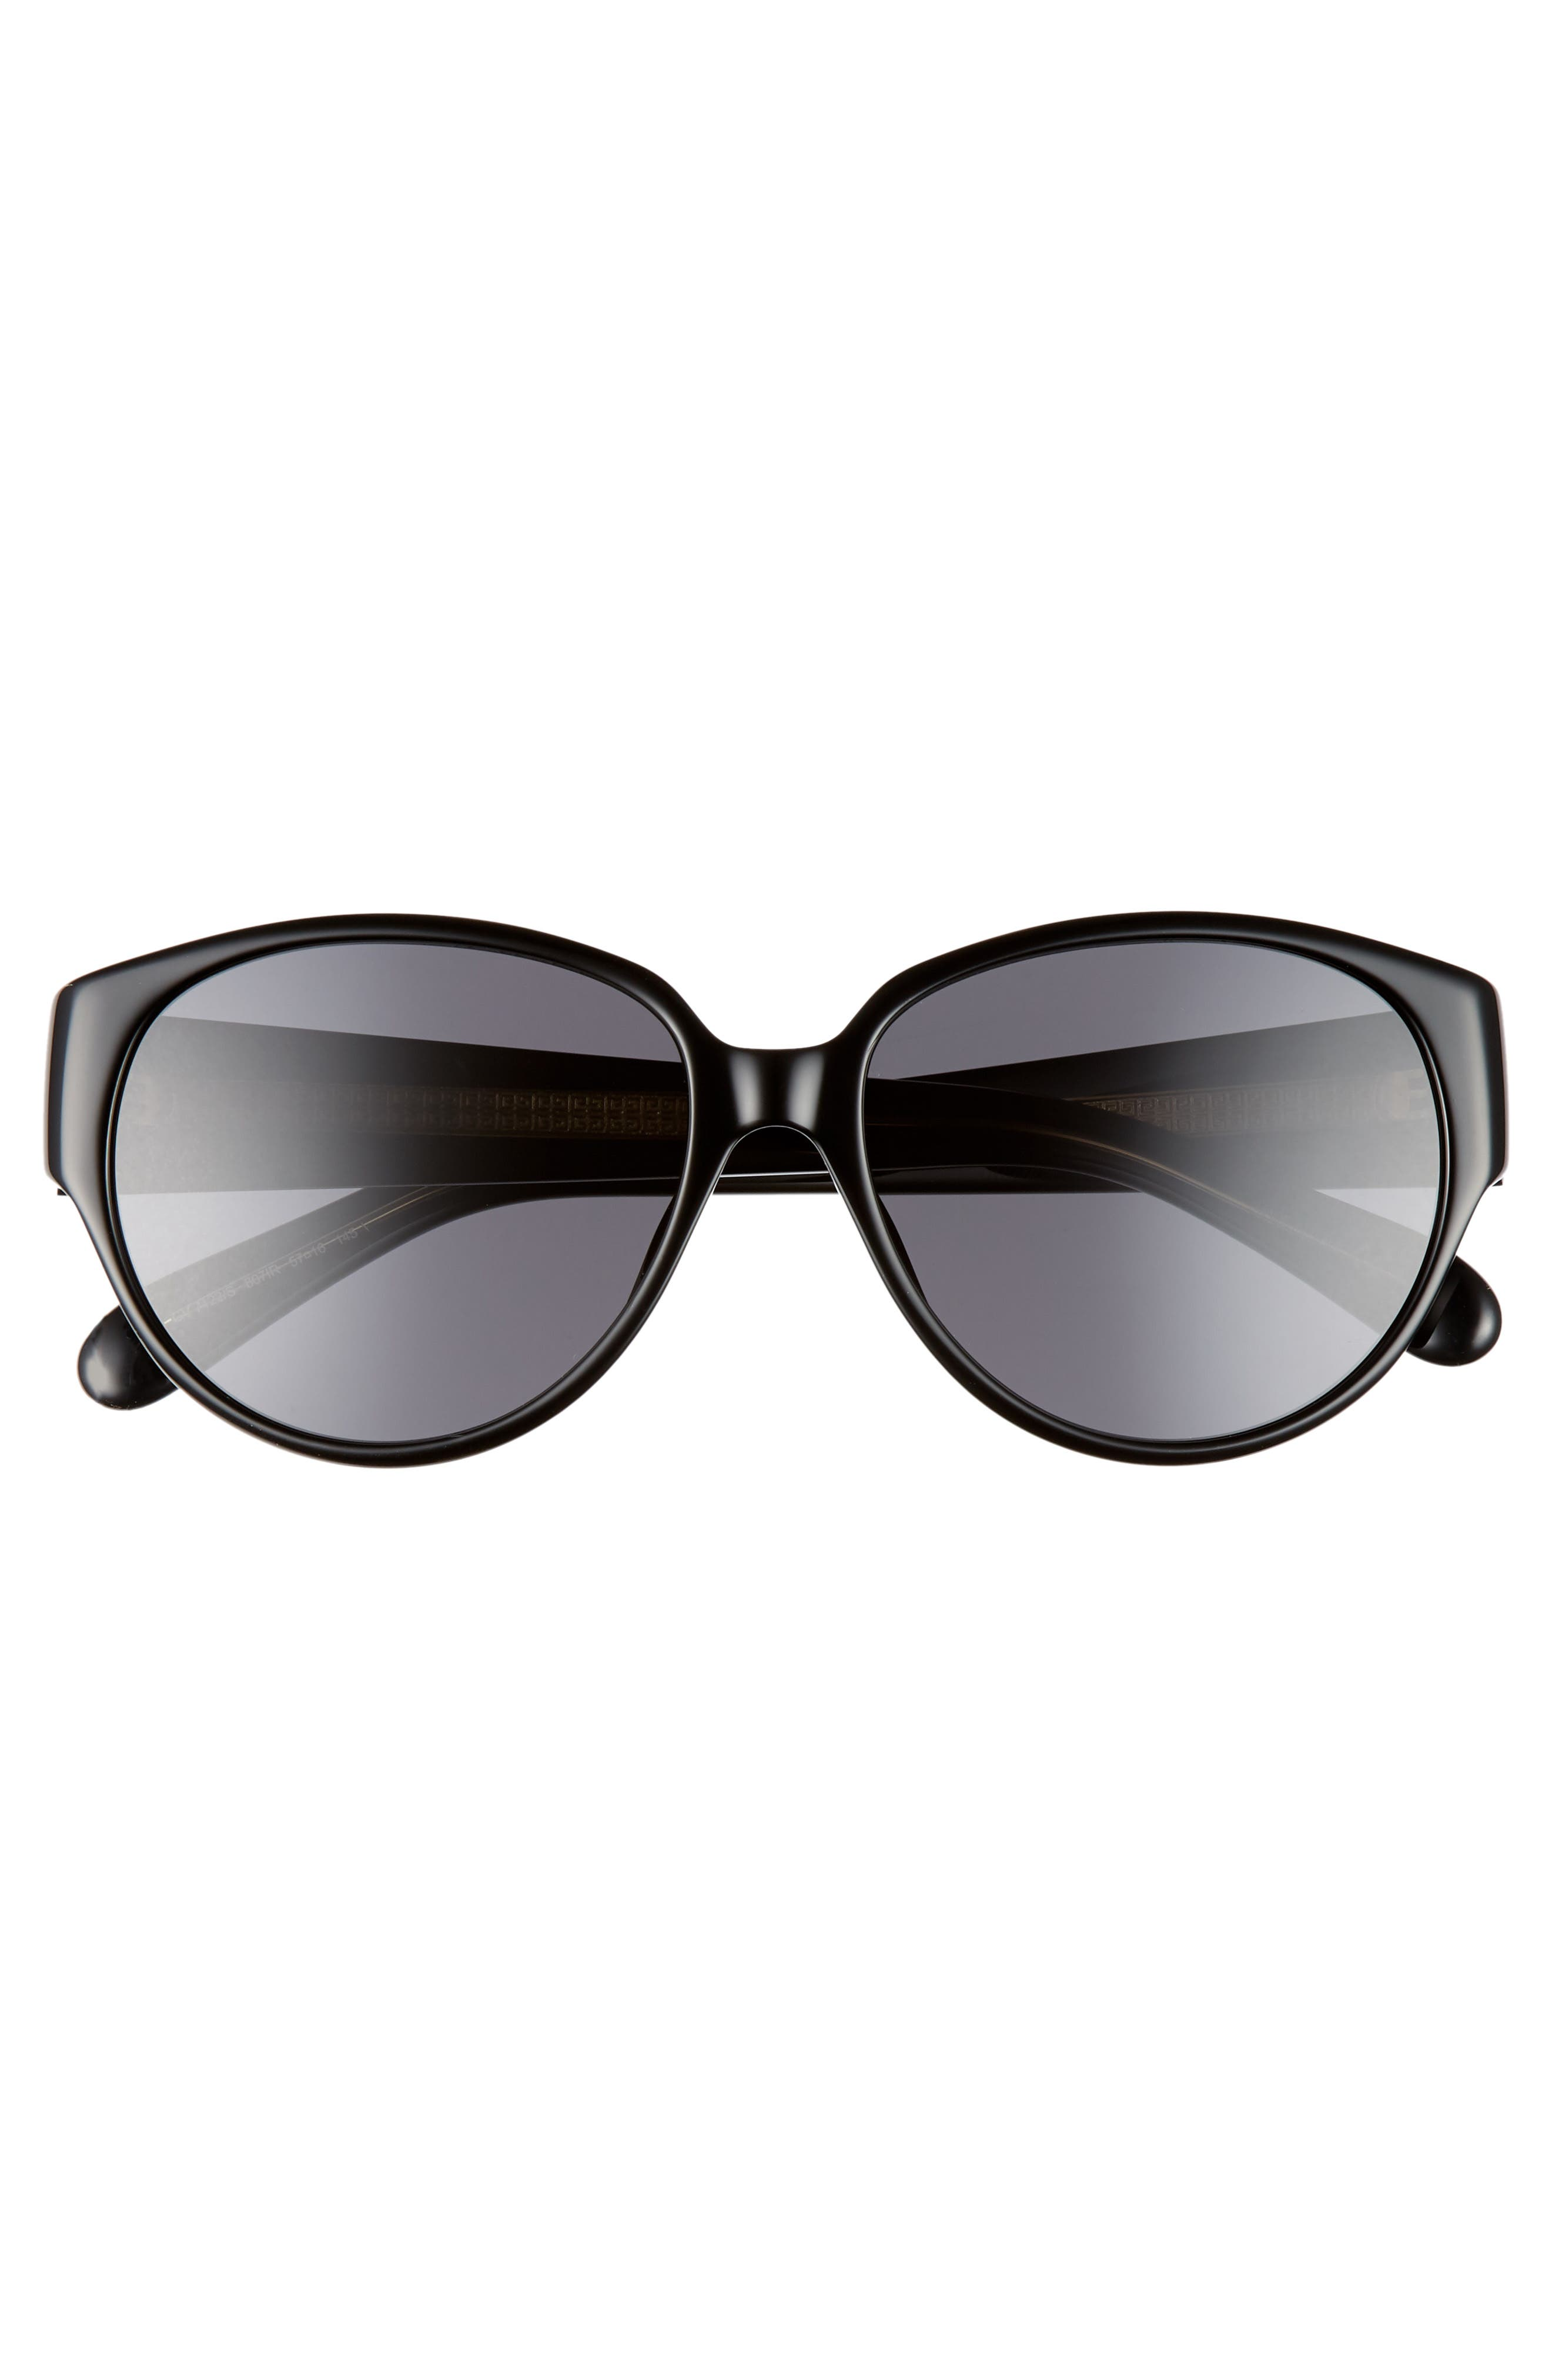 57mm Round Sunglasses,                             Alternate thumbnail 3, color,                             001